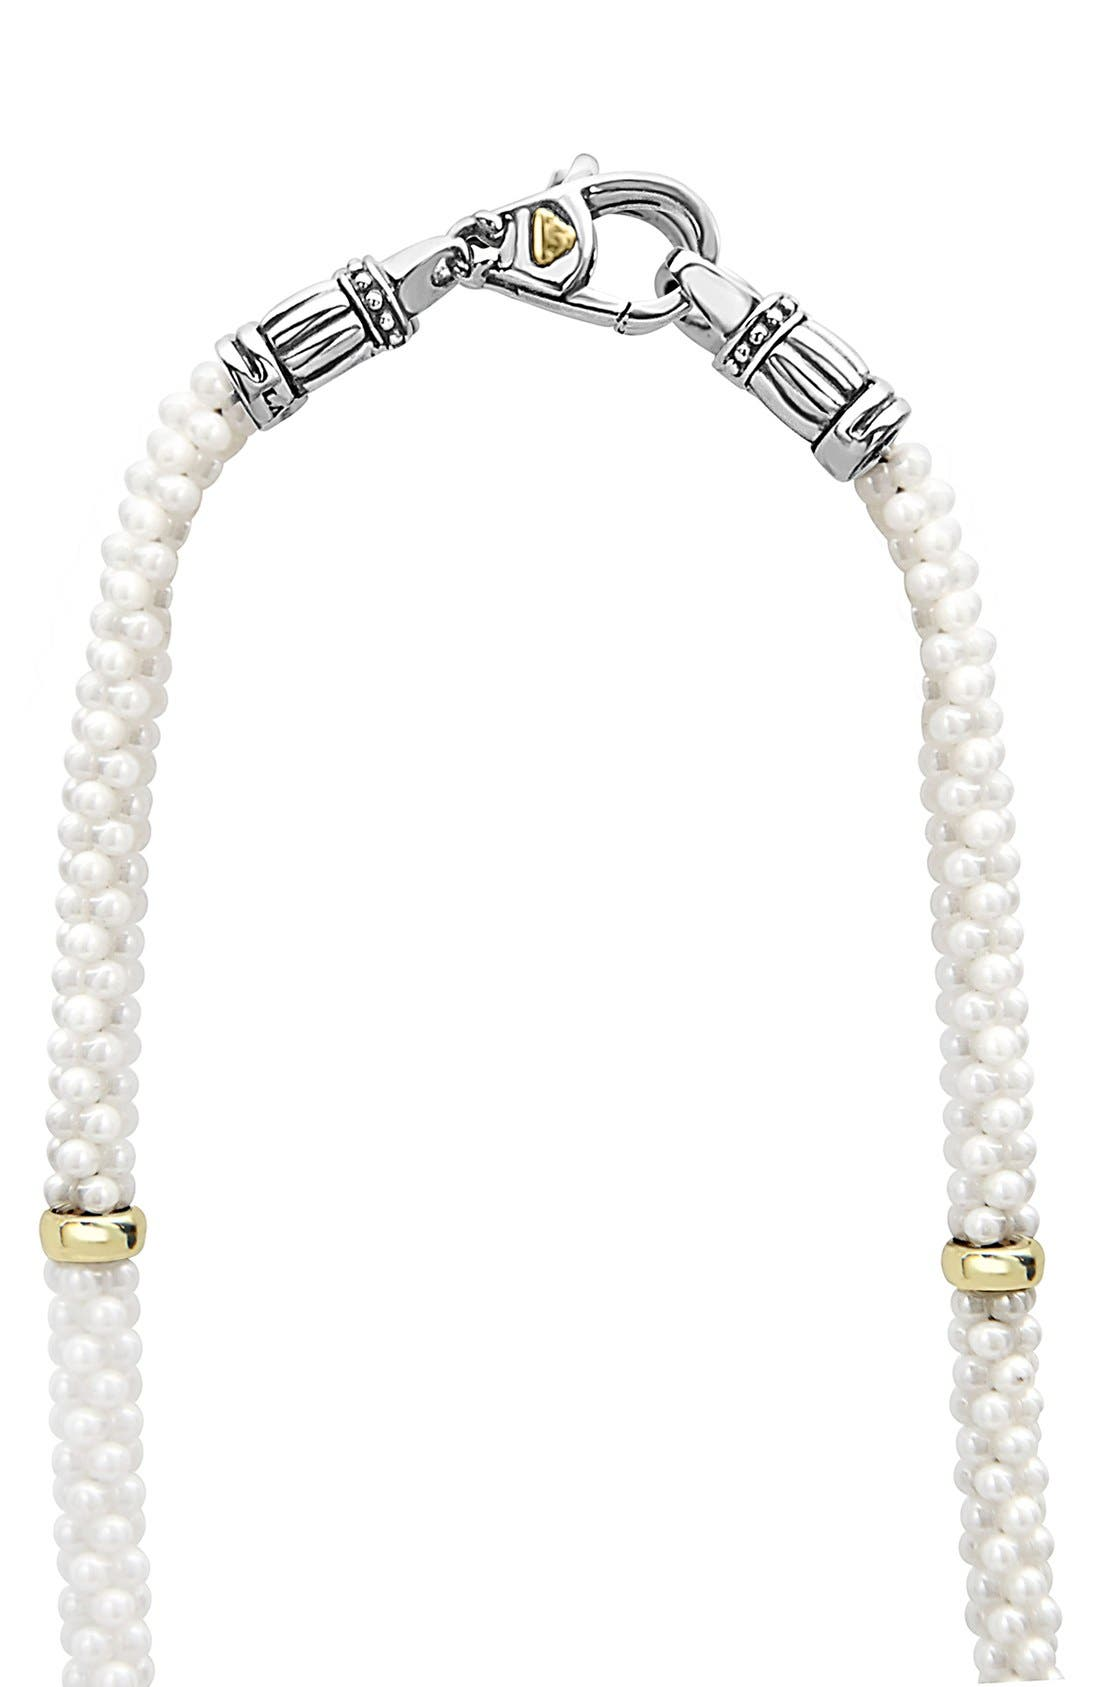 Alternate Image 3  - LAGOS 'White Caviar' 5mm Beaded Station Necklace